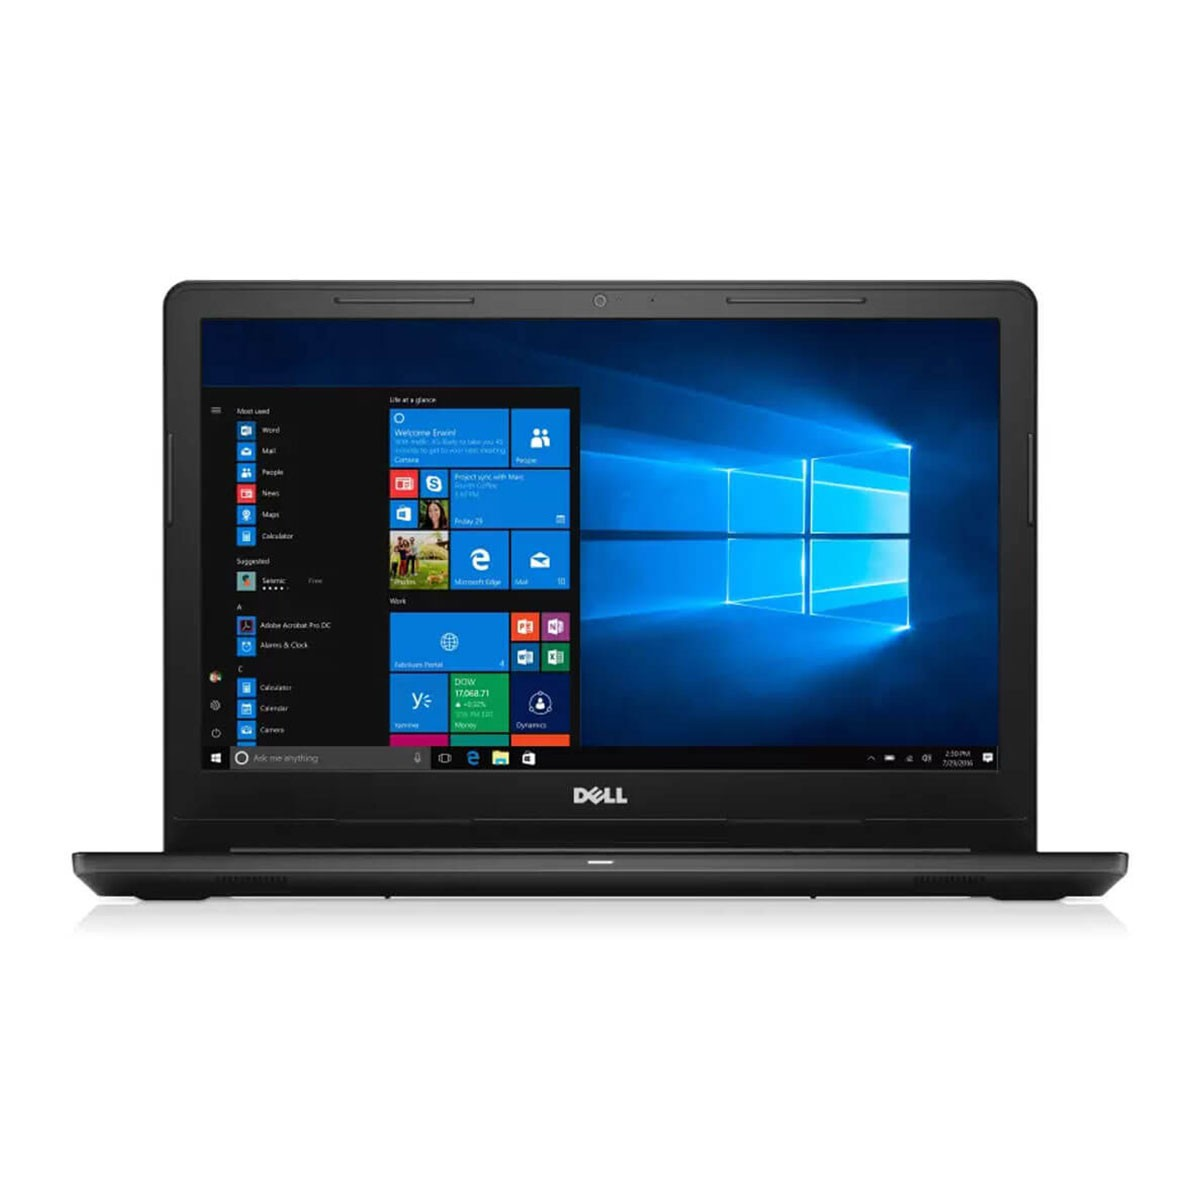 "DELL INSPIRON 15 3542 (4TH GEN CORE I5 4210U 1.70GHZ/8GB/1TB/2GB/WEBCAM/WIN-10 PRO/15.6"")"